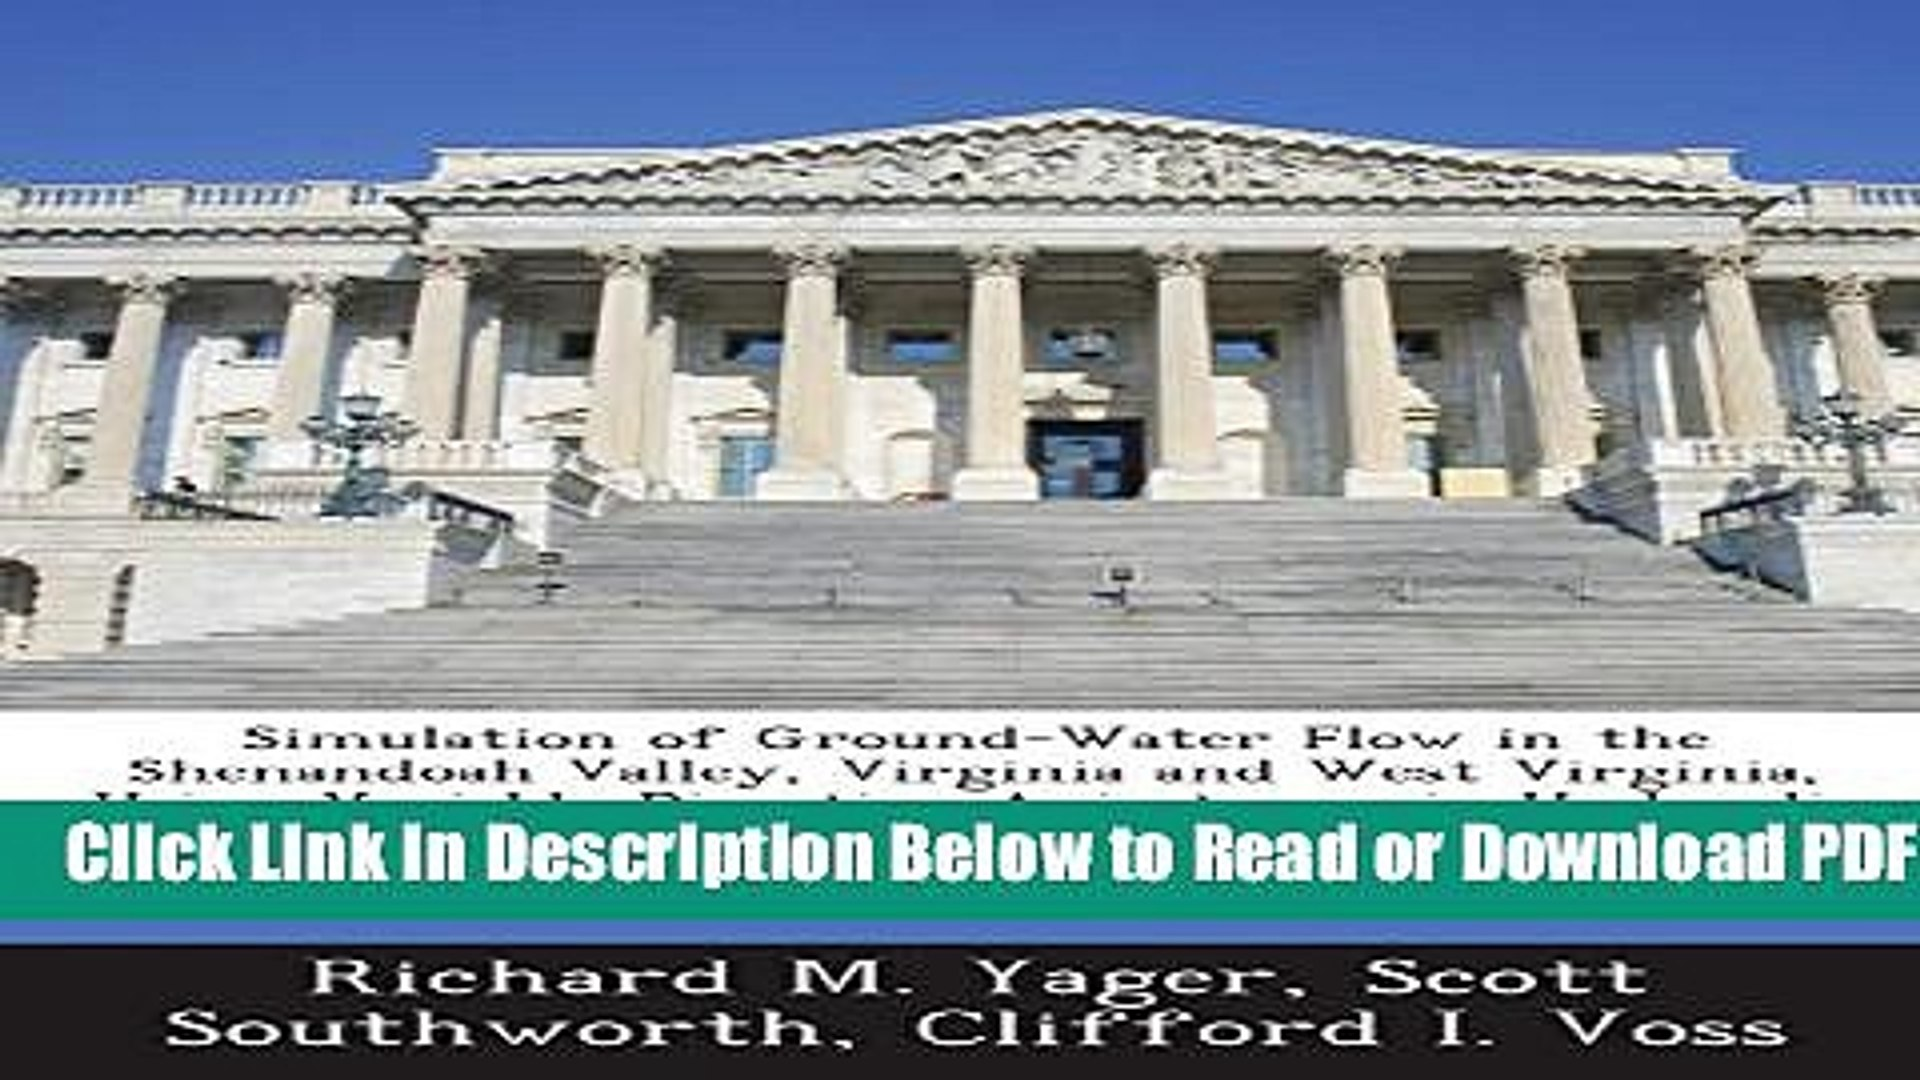 [Download] Simulation of Ground-Water Flow in the Shenandoah Valley, Virginia and West Virginia,